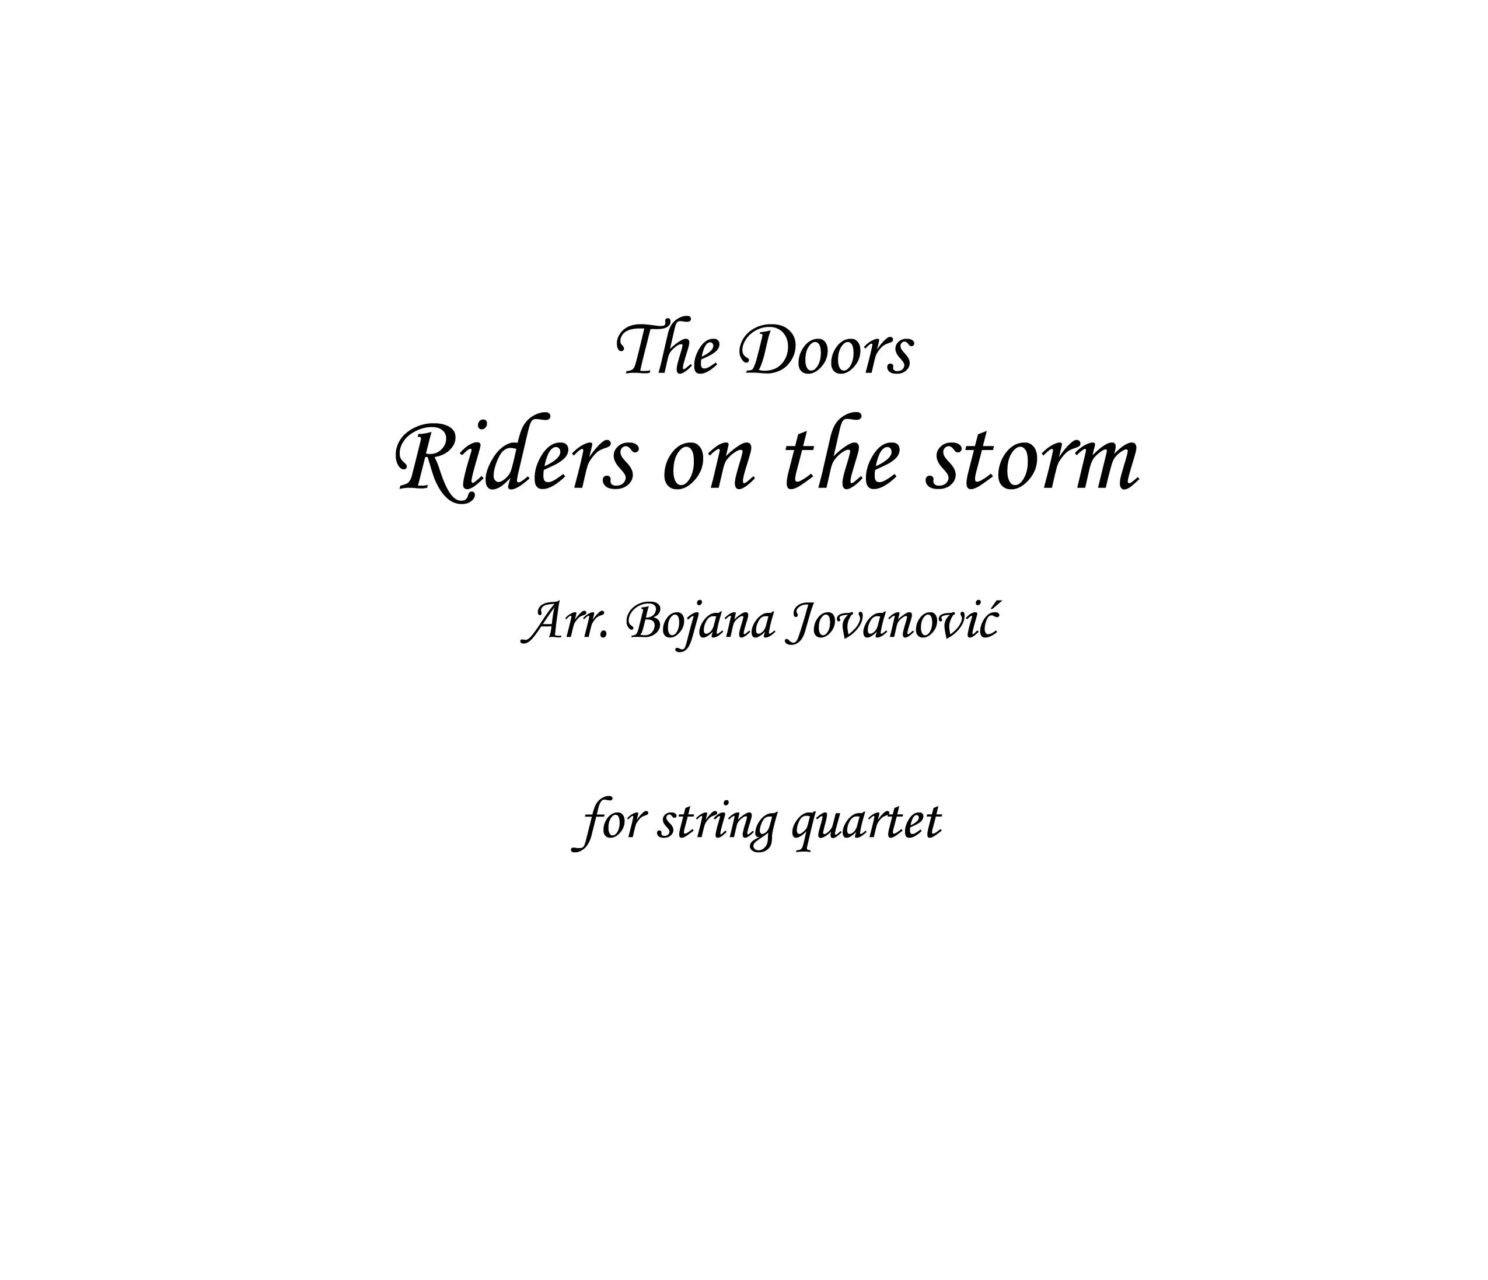 Riders On The Storm Sheet Music The Doors For String Quartet